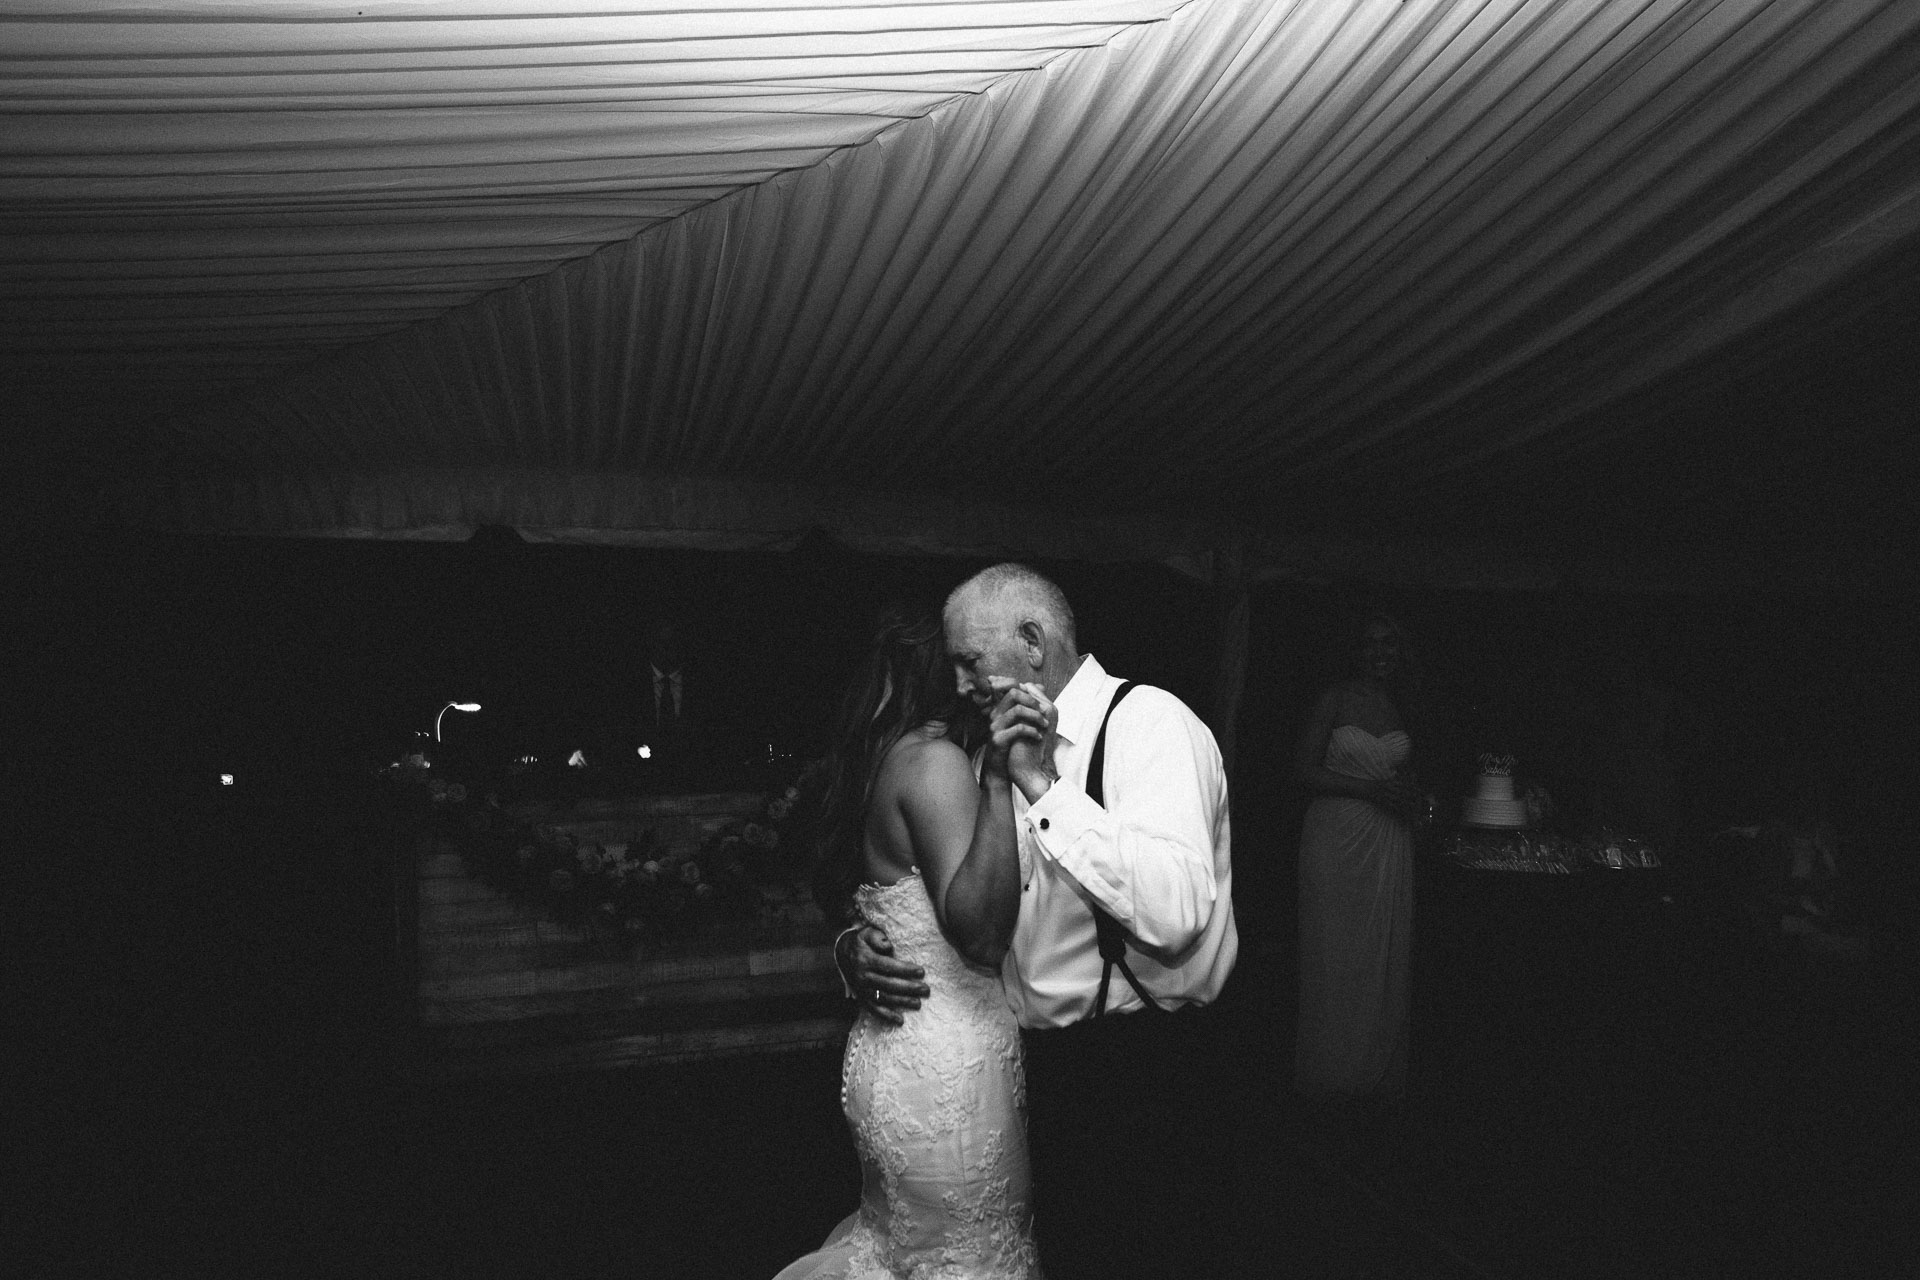 Shawna_Josh_Wedding_Easton_Maryland_JeanLaurentGaudy_130